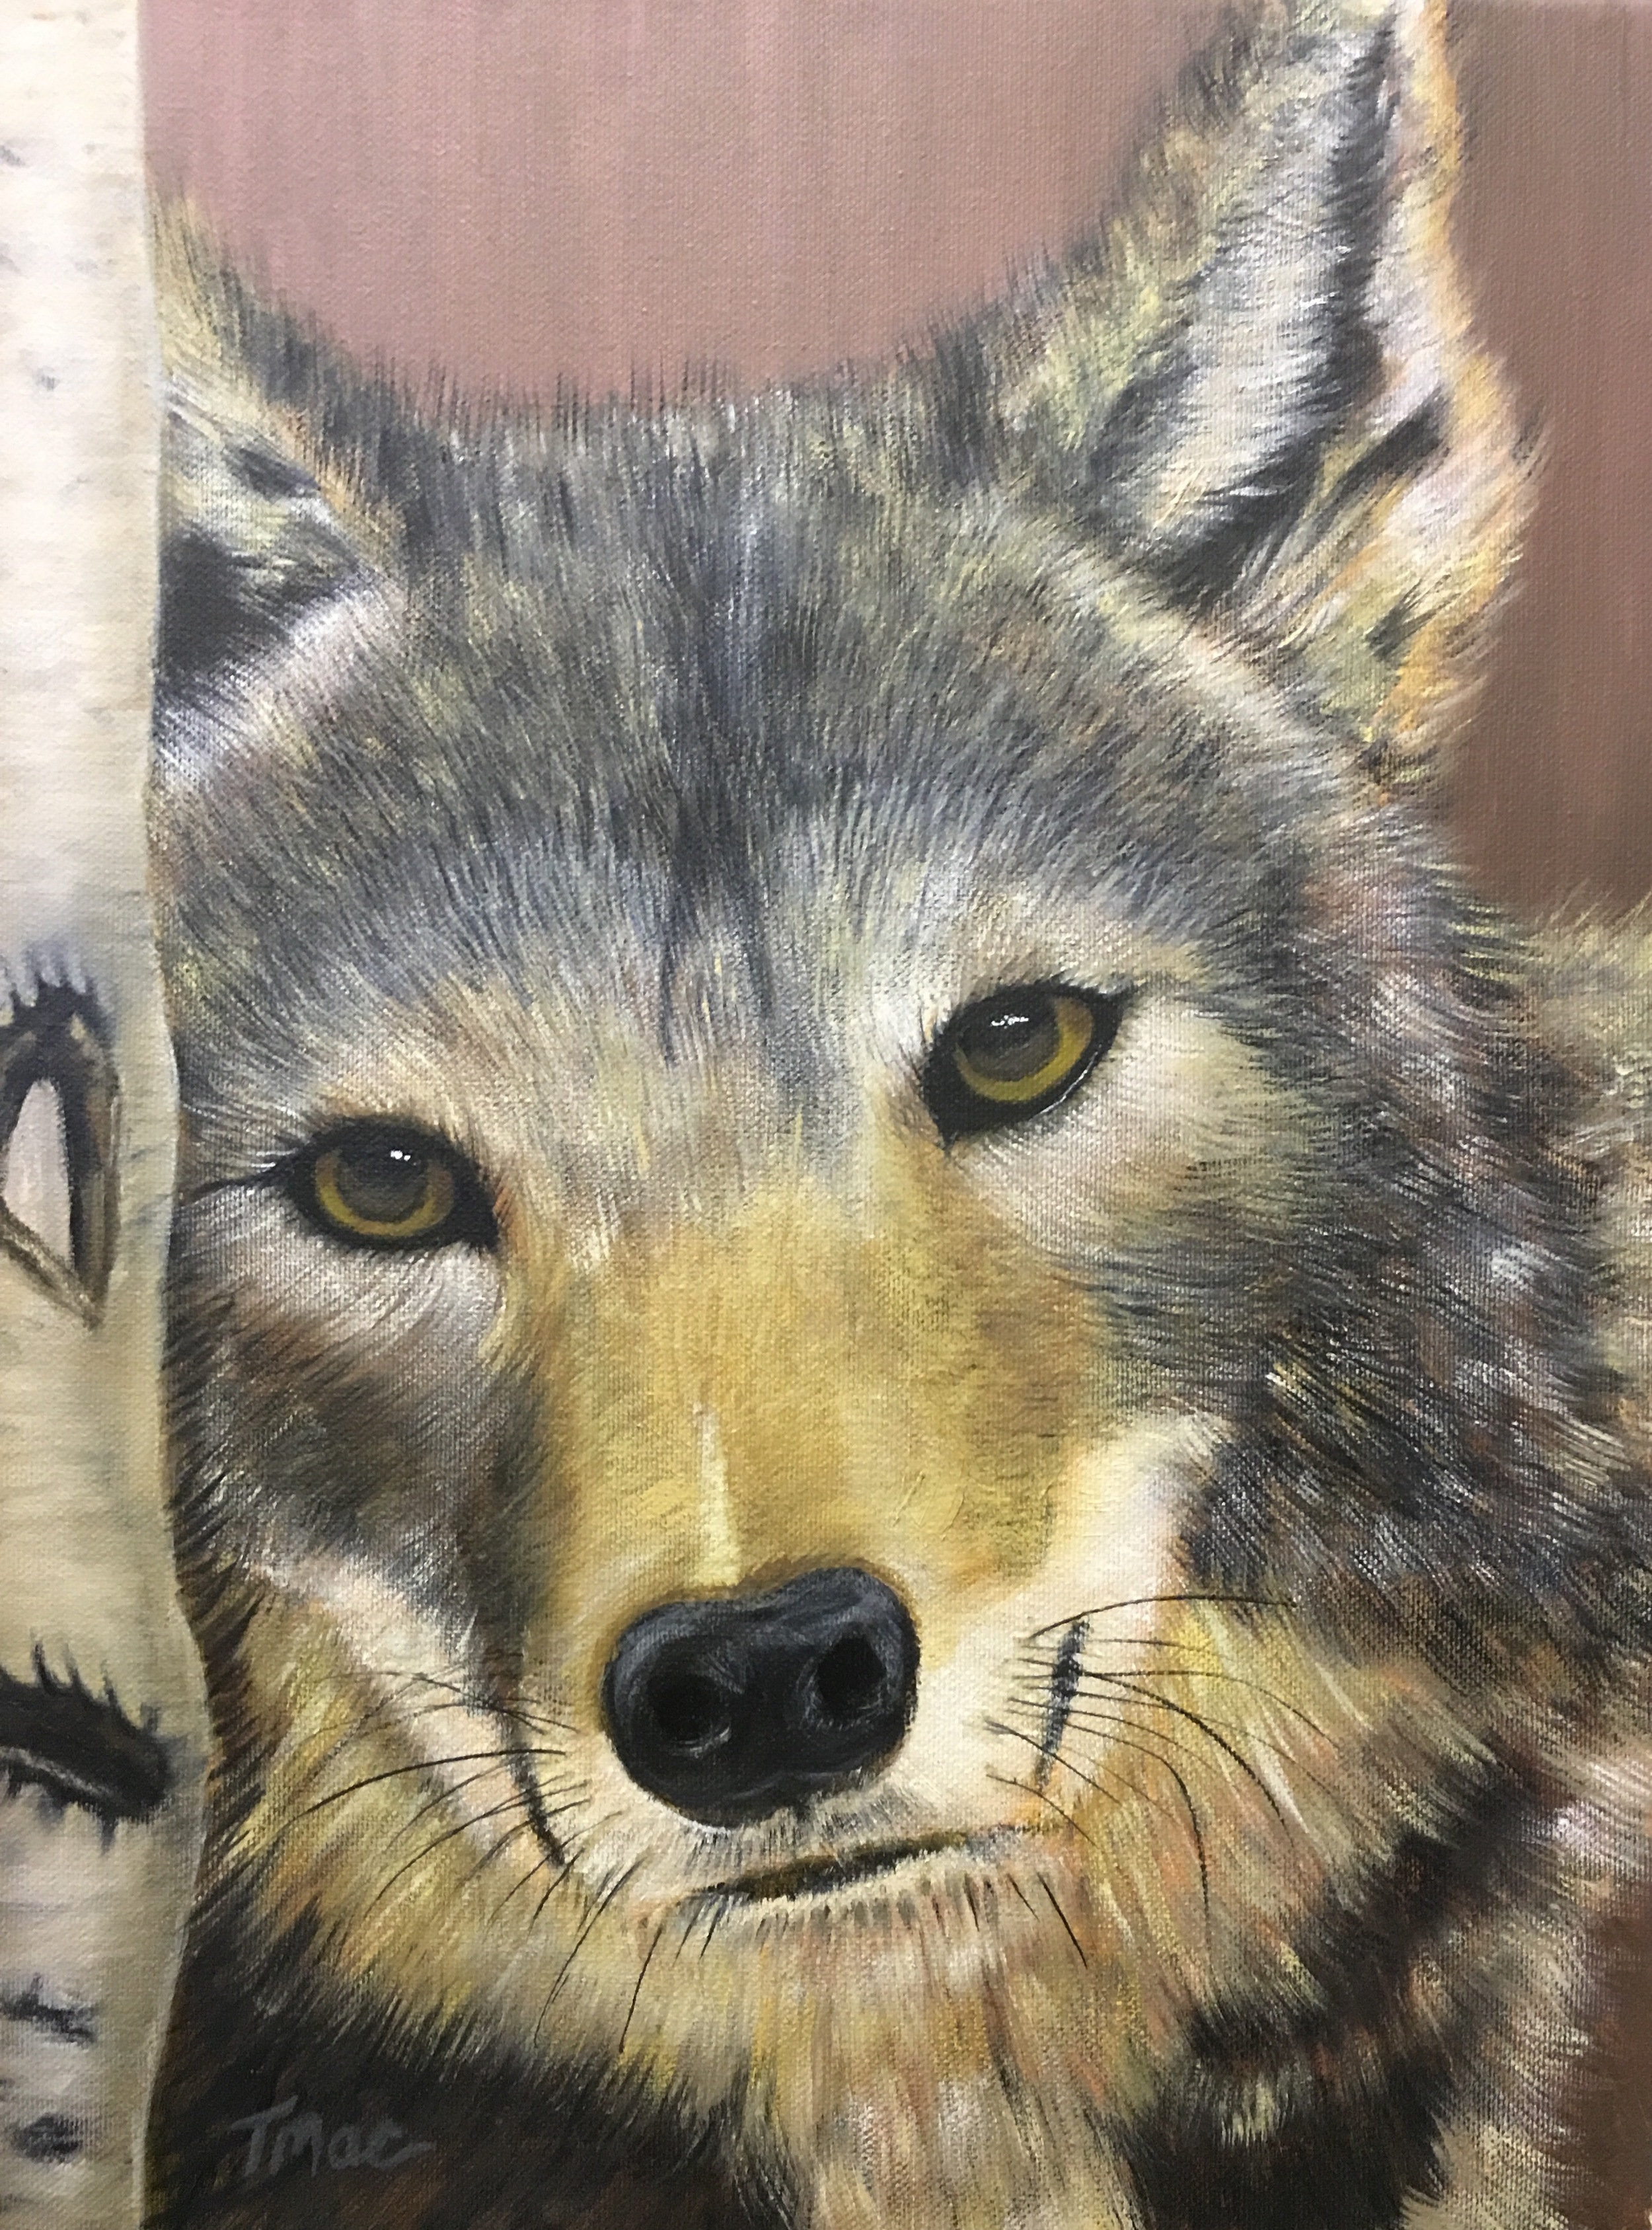 """""""WWW:Watching Waiting Wolf"""" by Teresa McCarthy, 16x14in, oil on canvas (2016), $425 